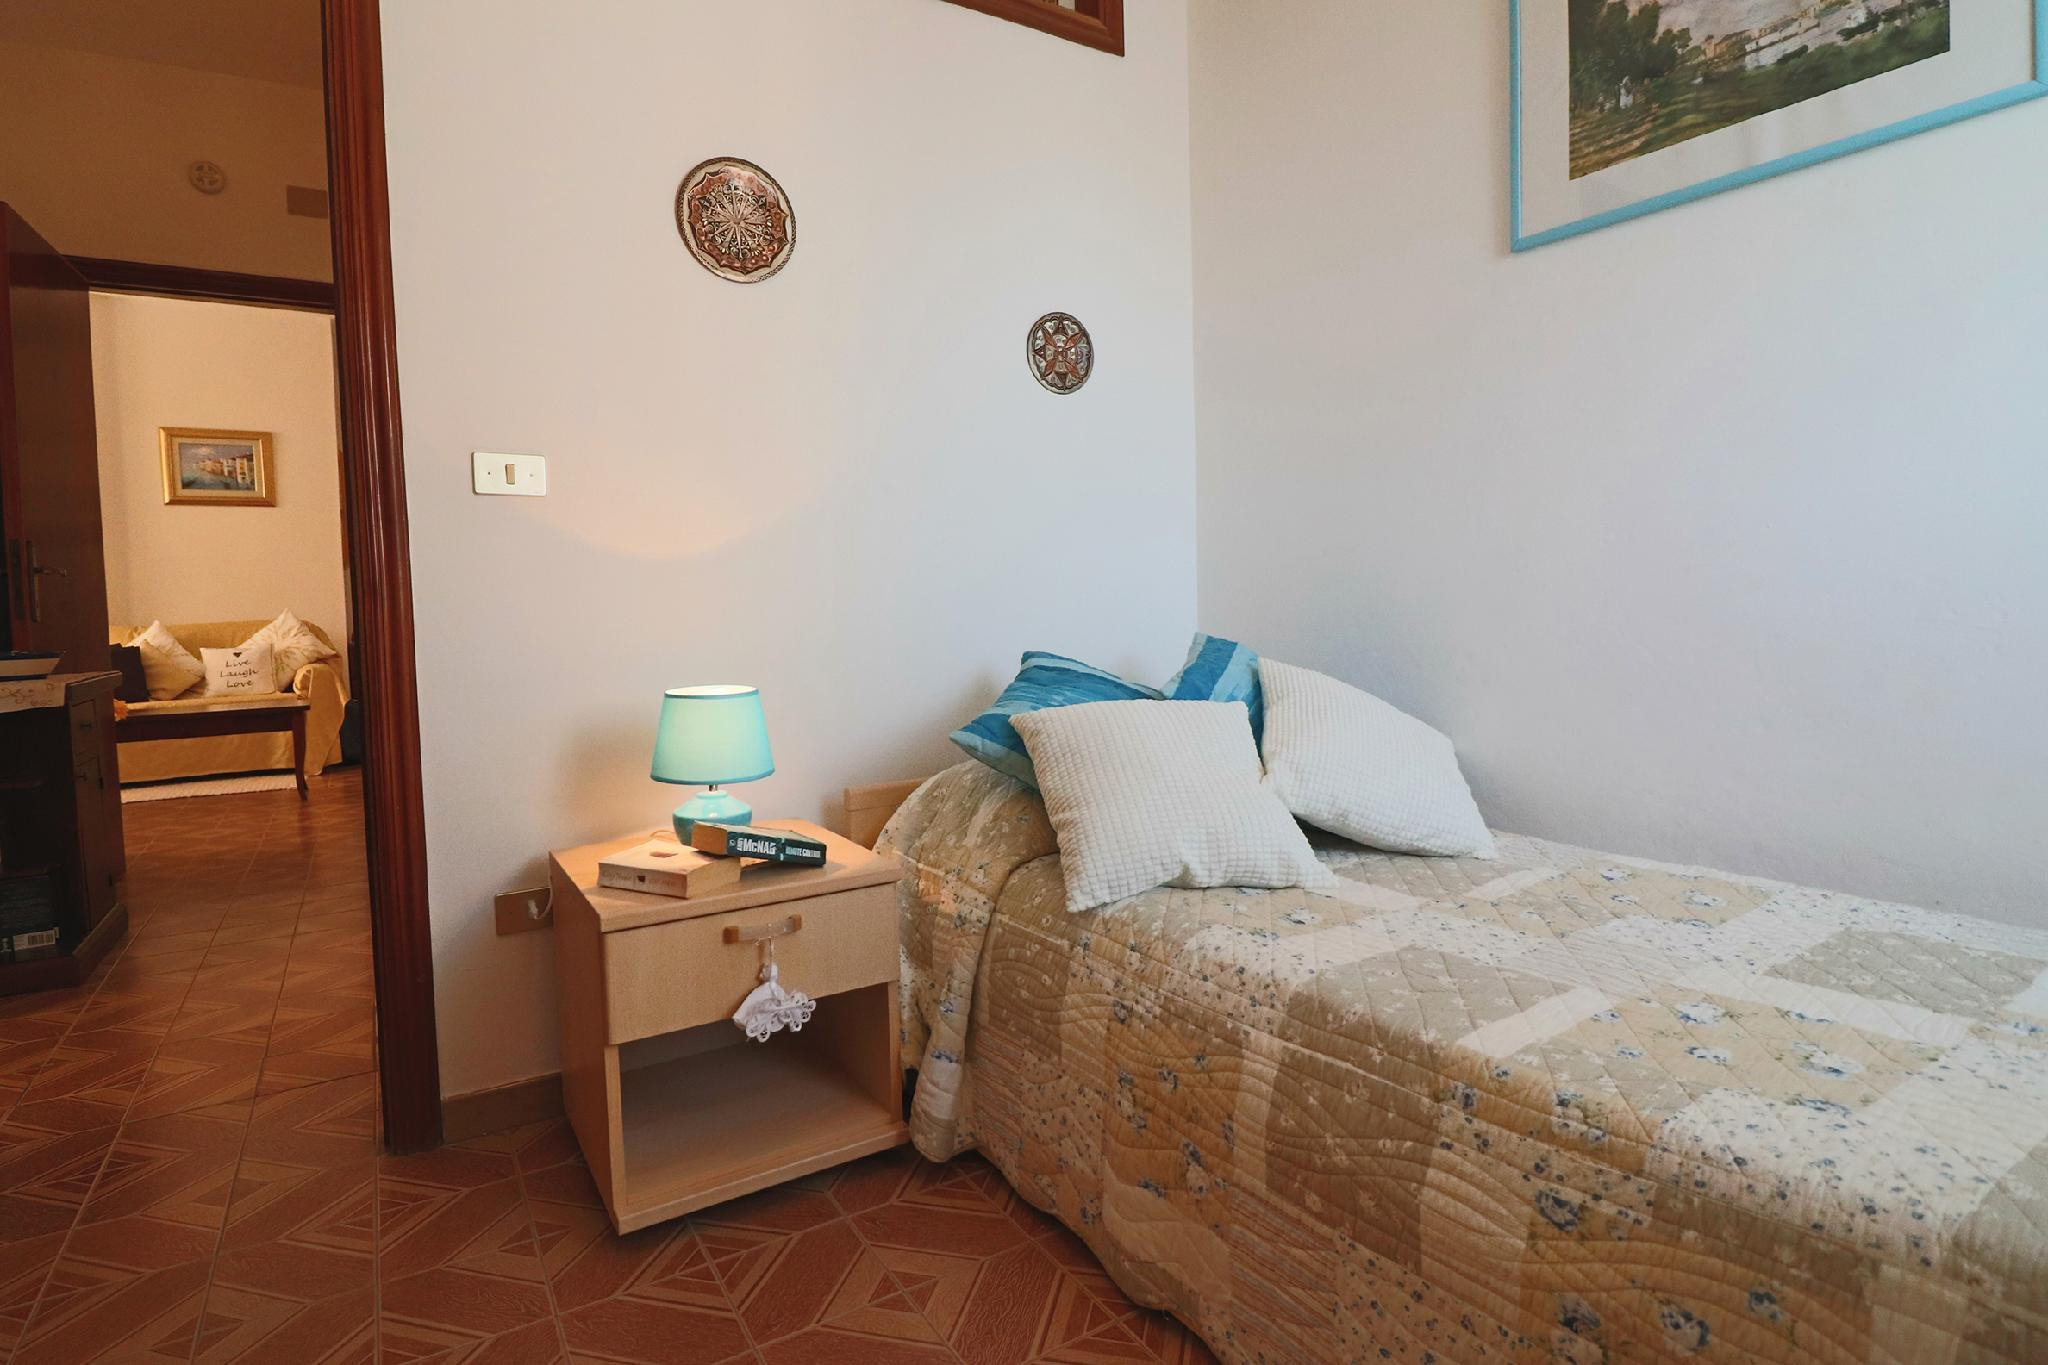 Central Apartment On The Beach With Balcony, Wi-fi Air Conditioning Parking